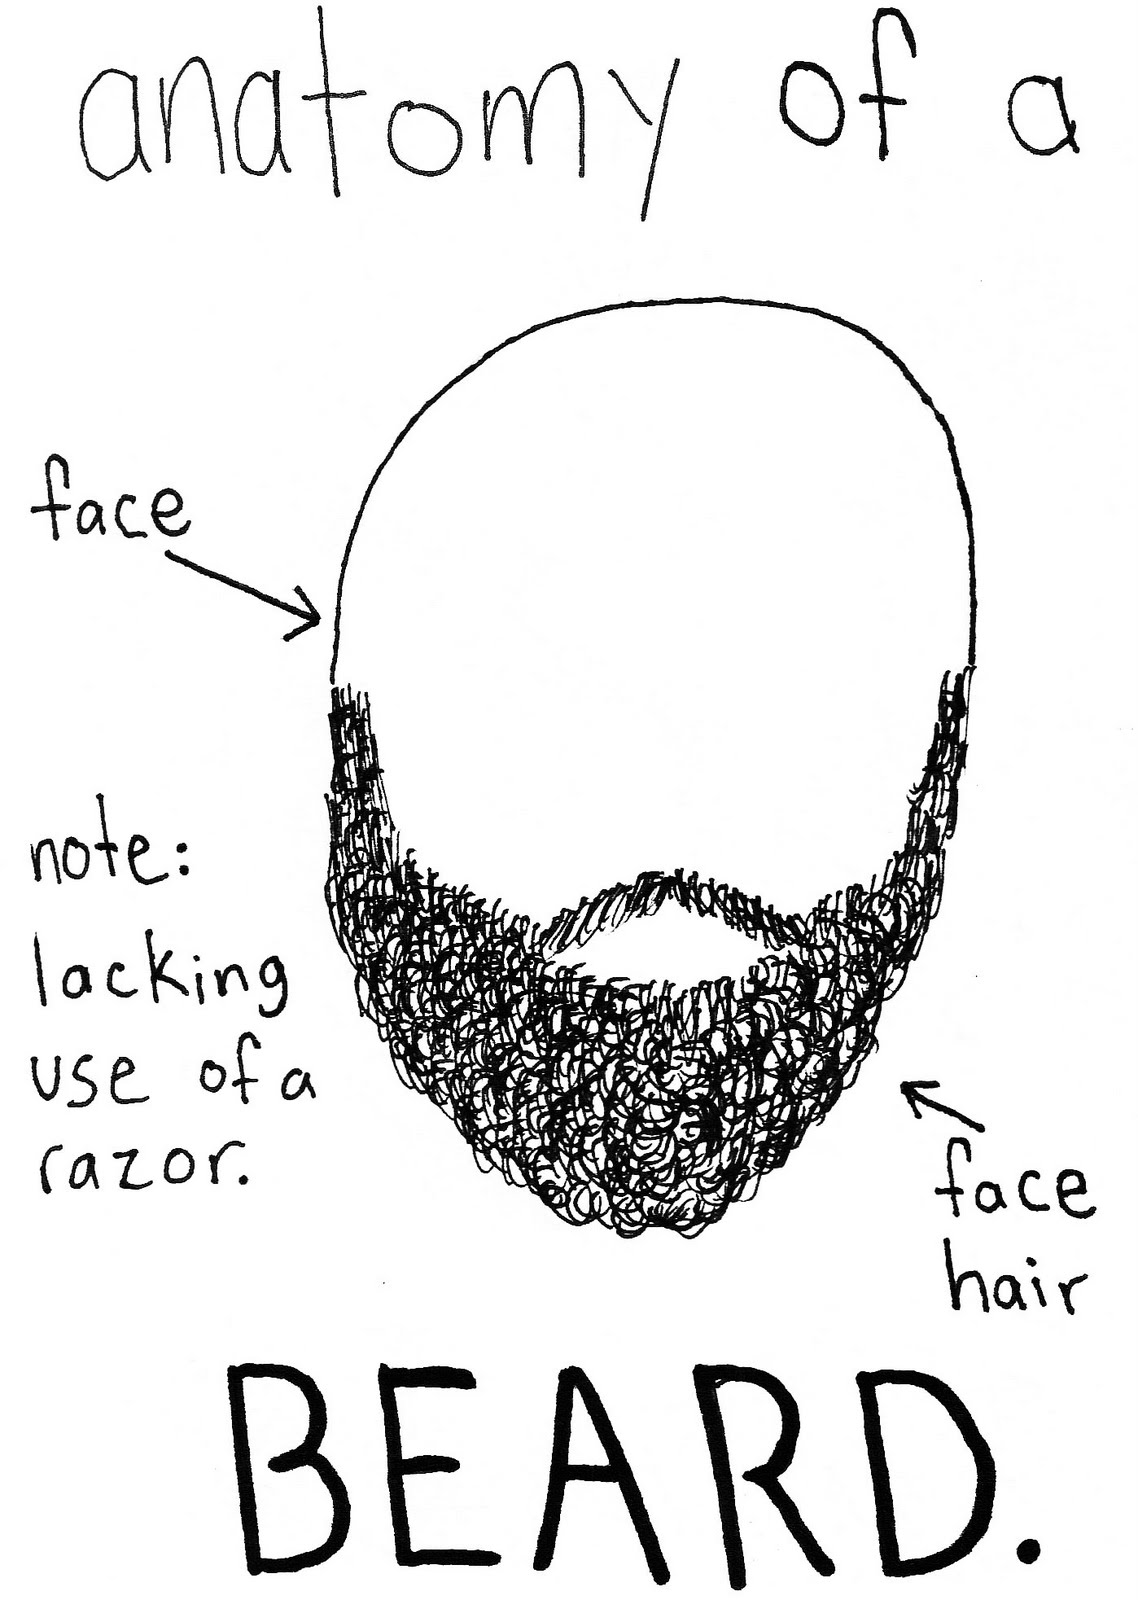 Summer Beard: The Zine: Freeeeedoooommmmmmm